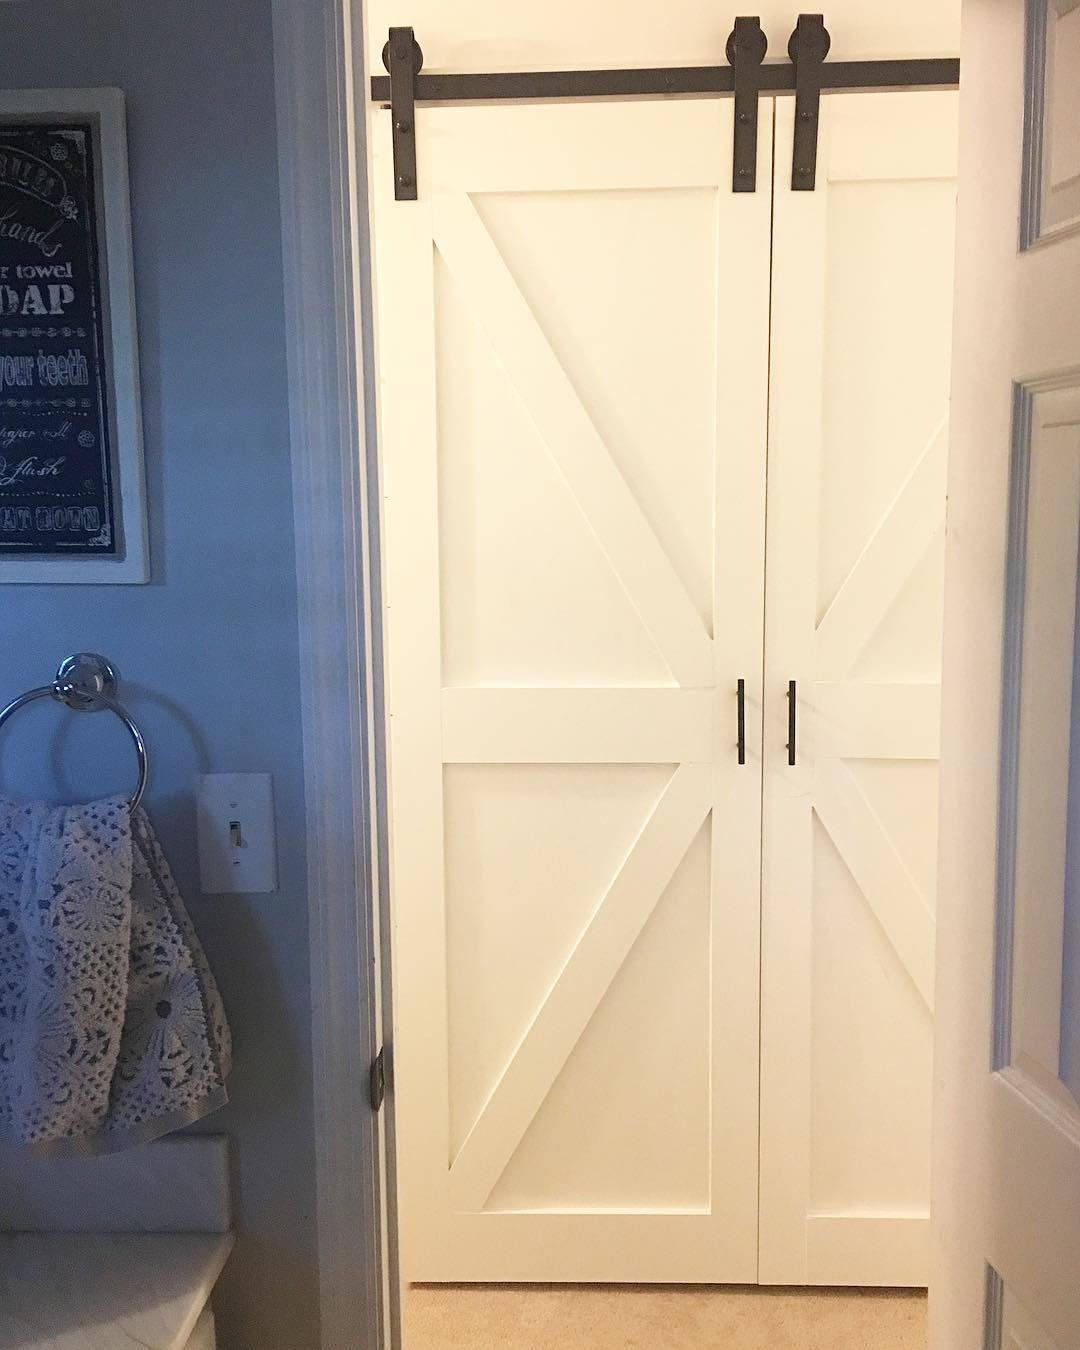 Top 13 Closet Door Ideas to Try to Make Your Bedroom Tidy and ...